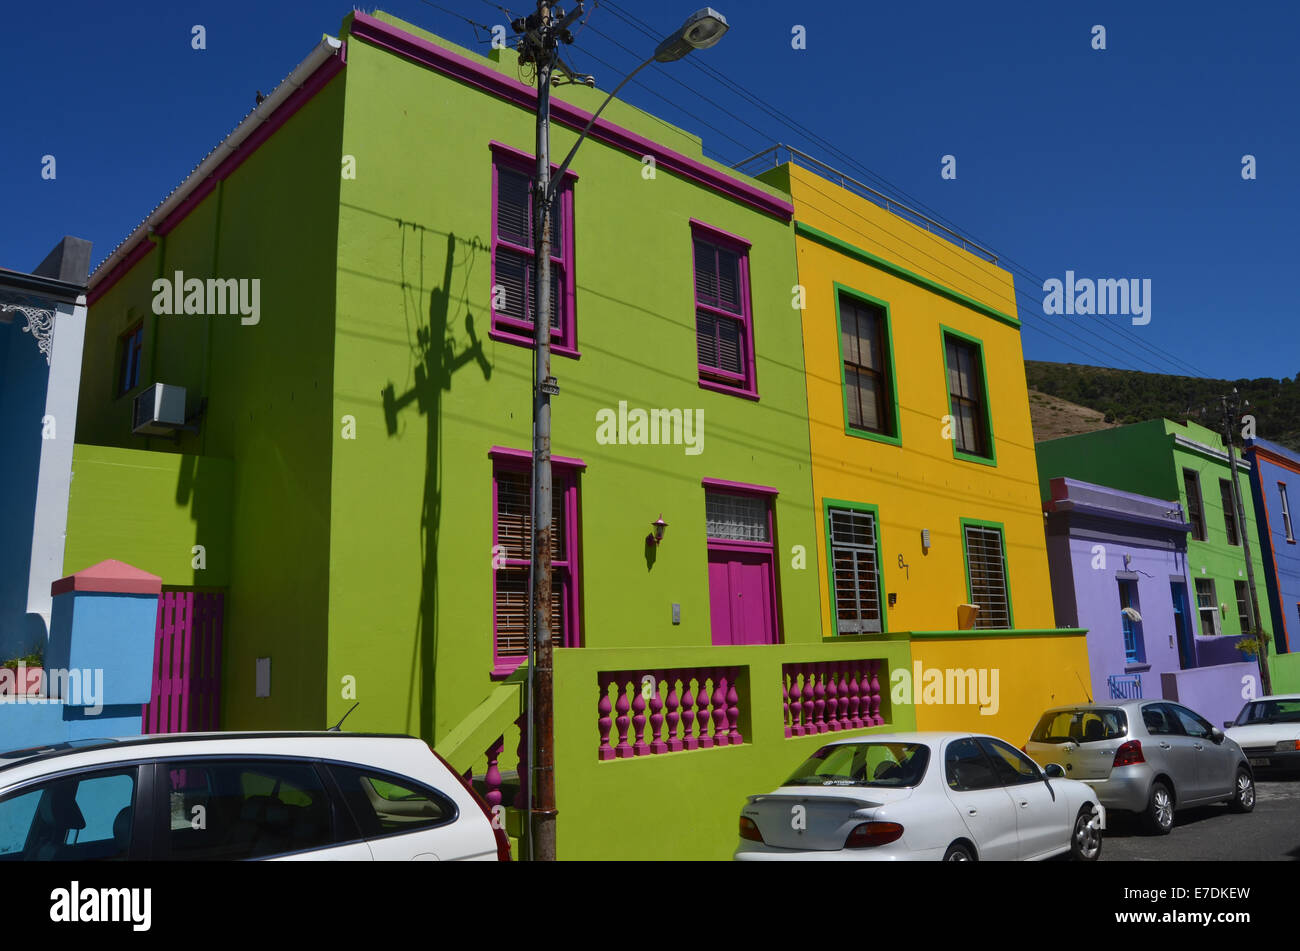 Brightly coloured houses in Bo Kaap, muslim area of Cape Town. South Africa 2014 - Stock Image